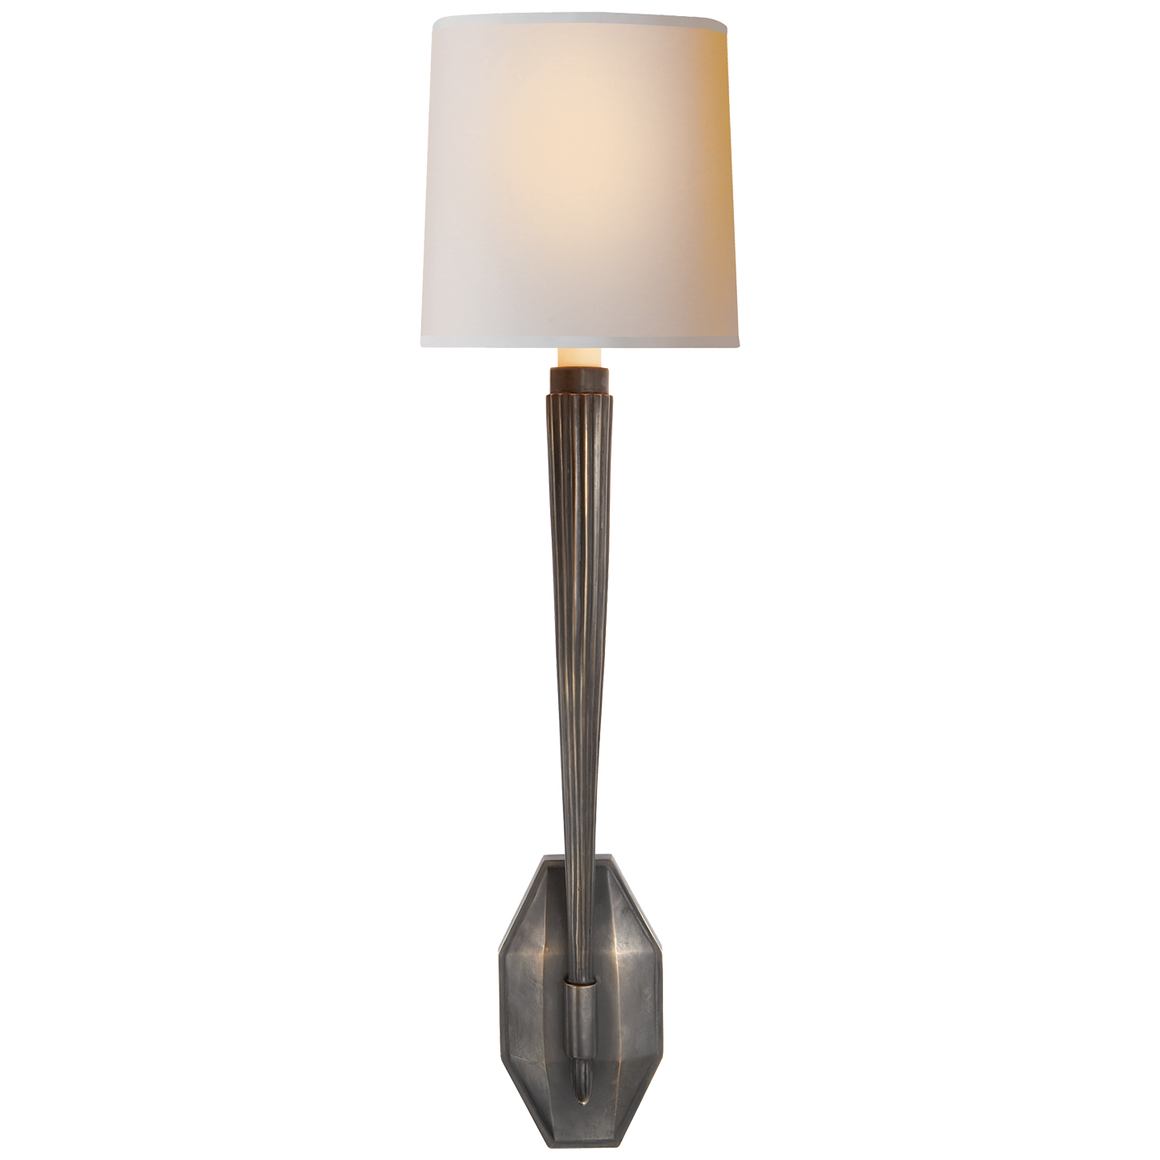 Ruhlmann Single Sconce